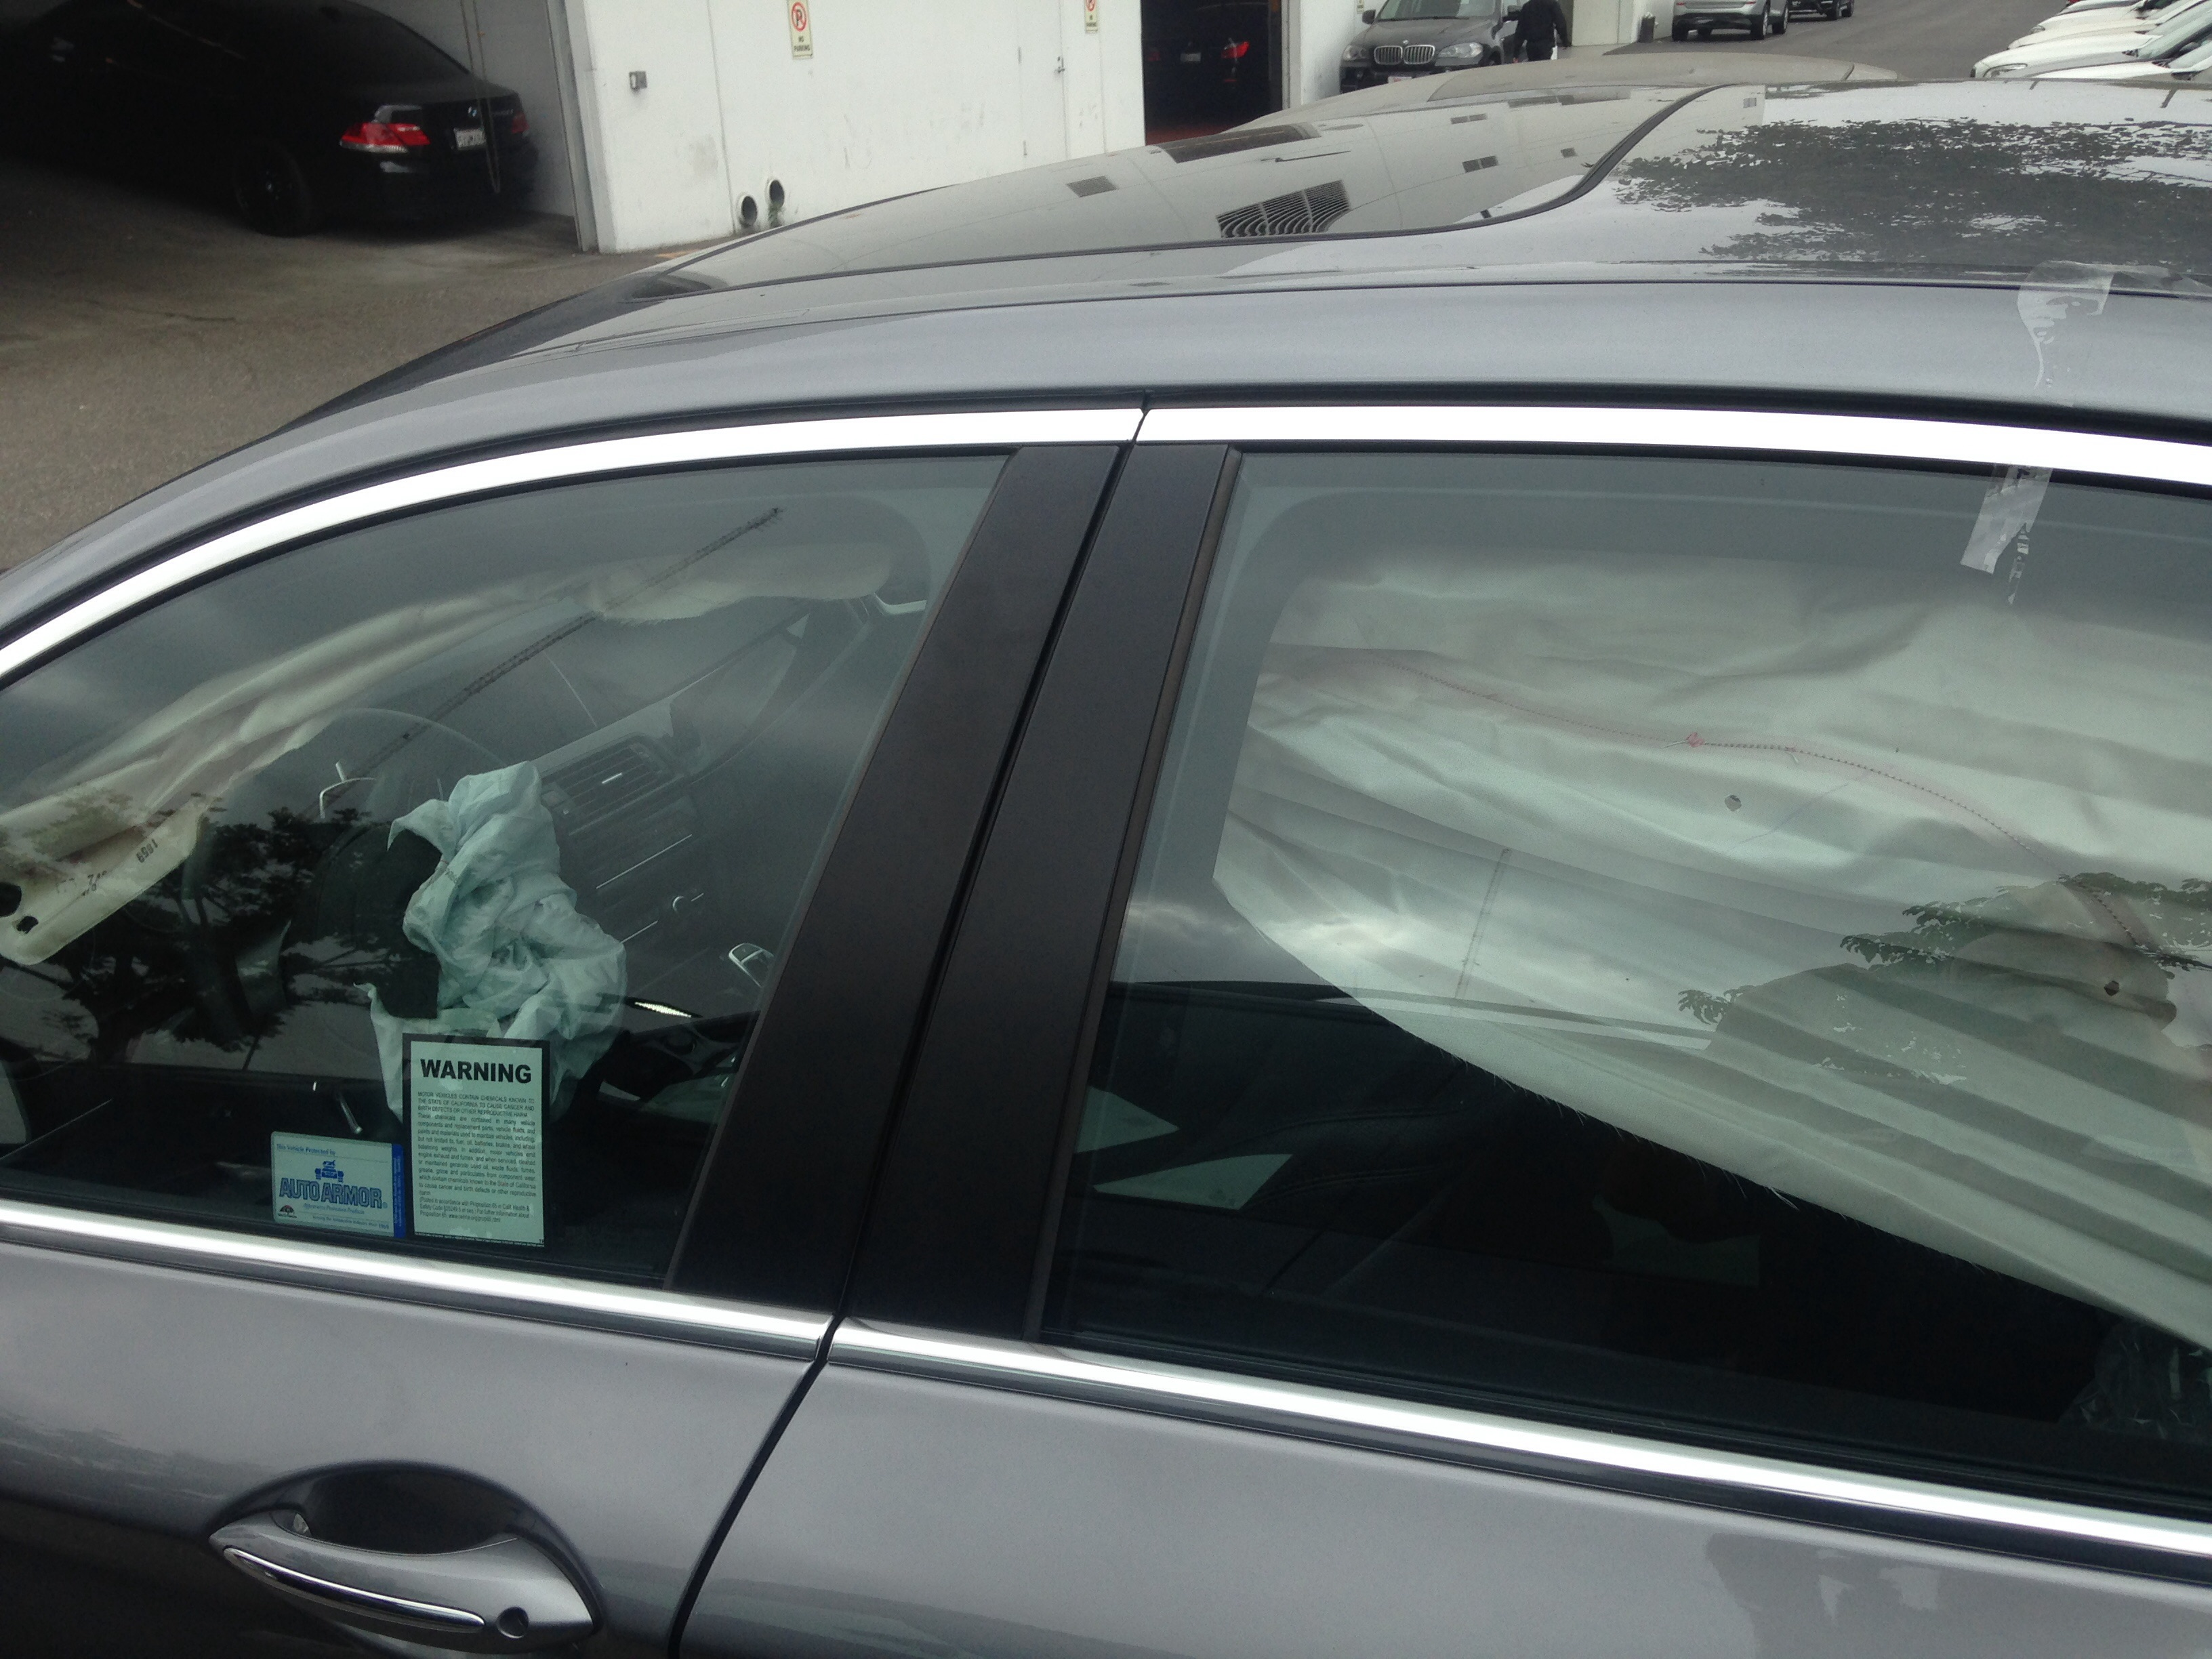 Uncategorized pictures of car accidents bad car - Now For The Good Stuff Notice The Driver Airbag And Side Head Airbag Were Deployed That S Bmw Safety For You This Is One Of The Reasons To Drive A